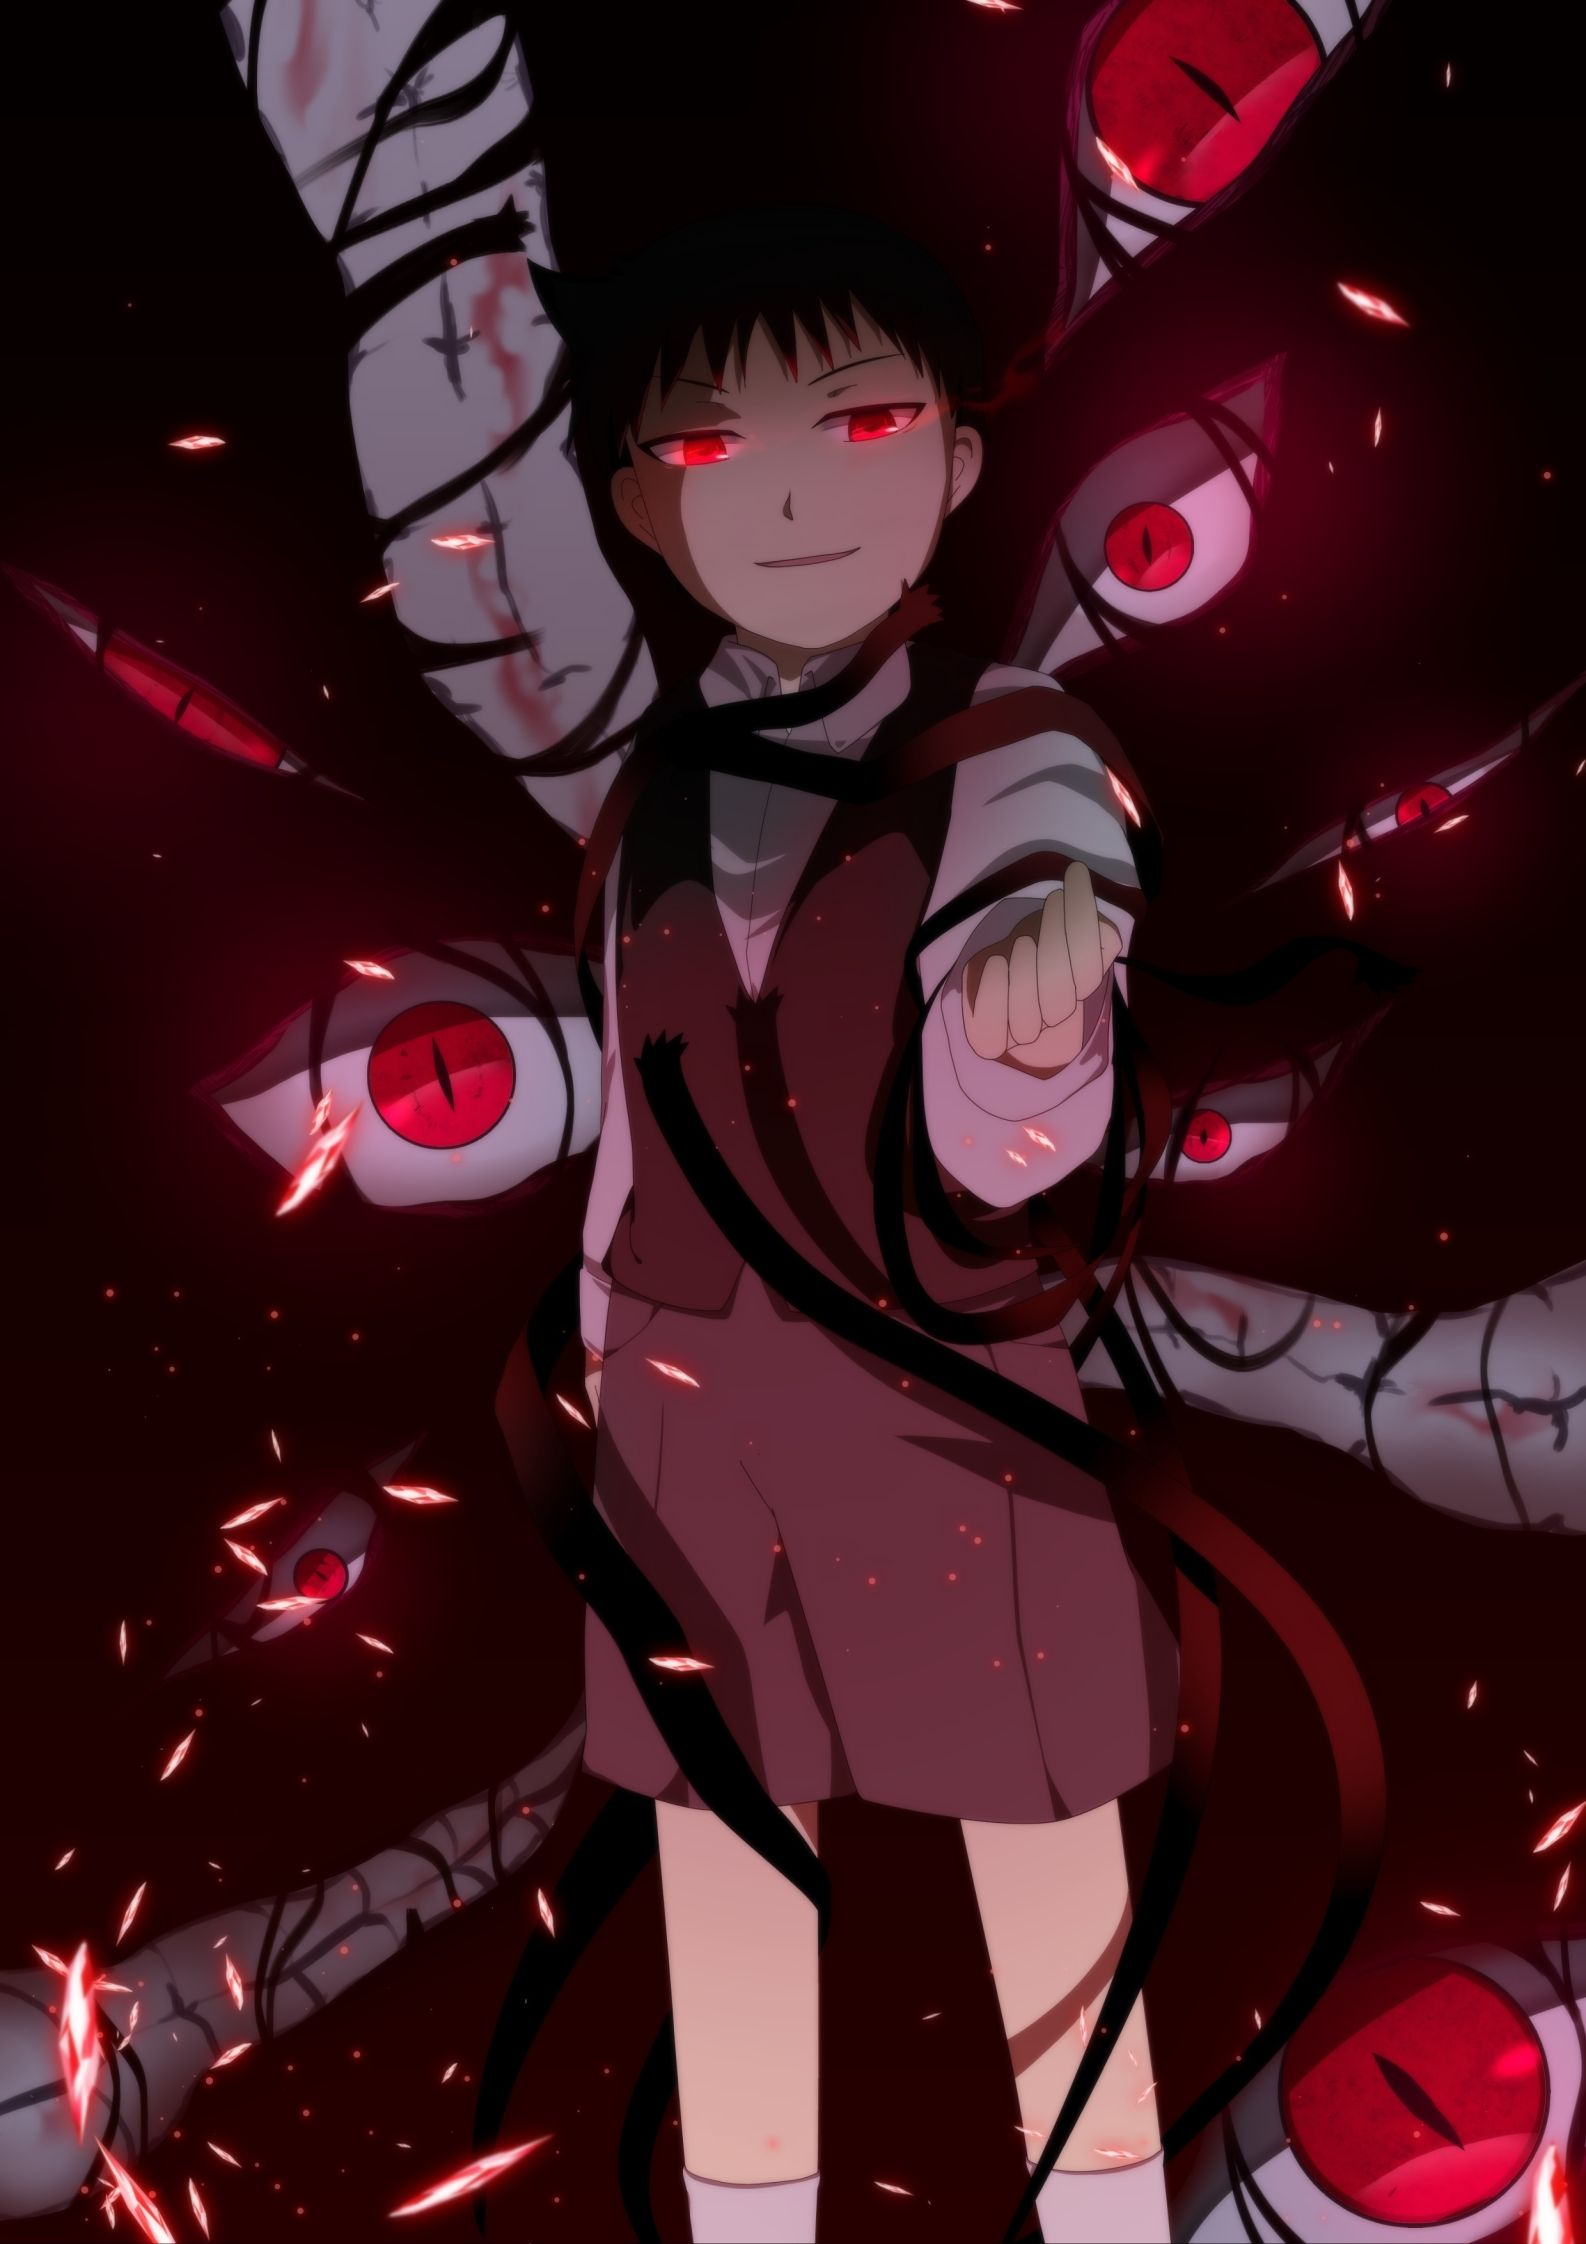 Its always the demonic little boy/girl/demon/homunculi that scares teh crap out of me 0: